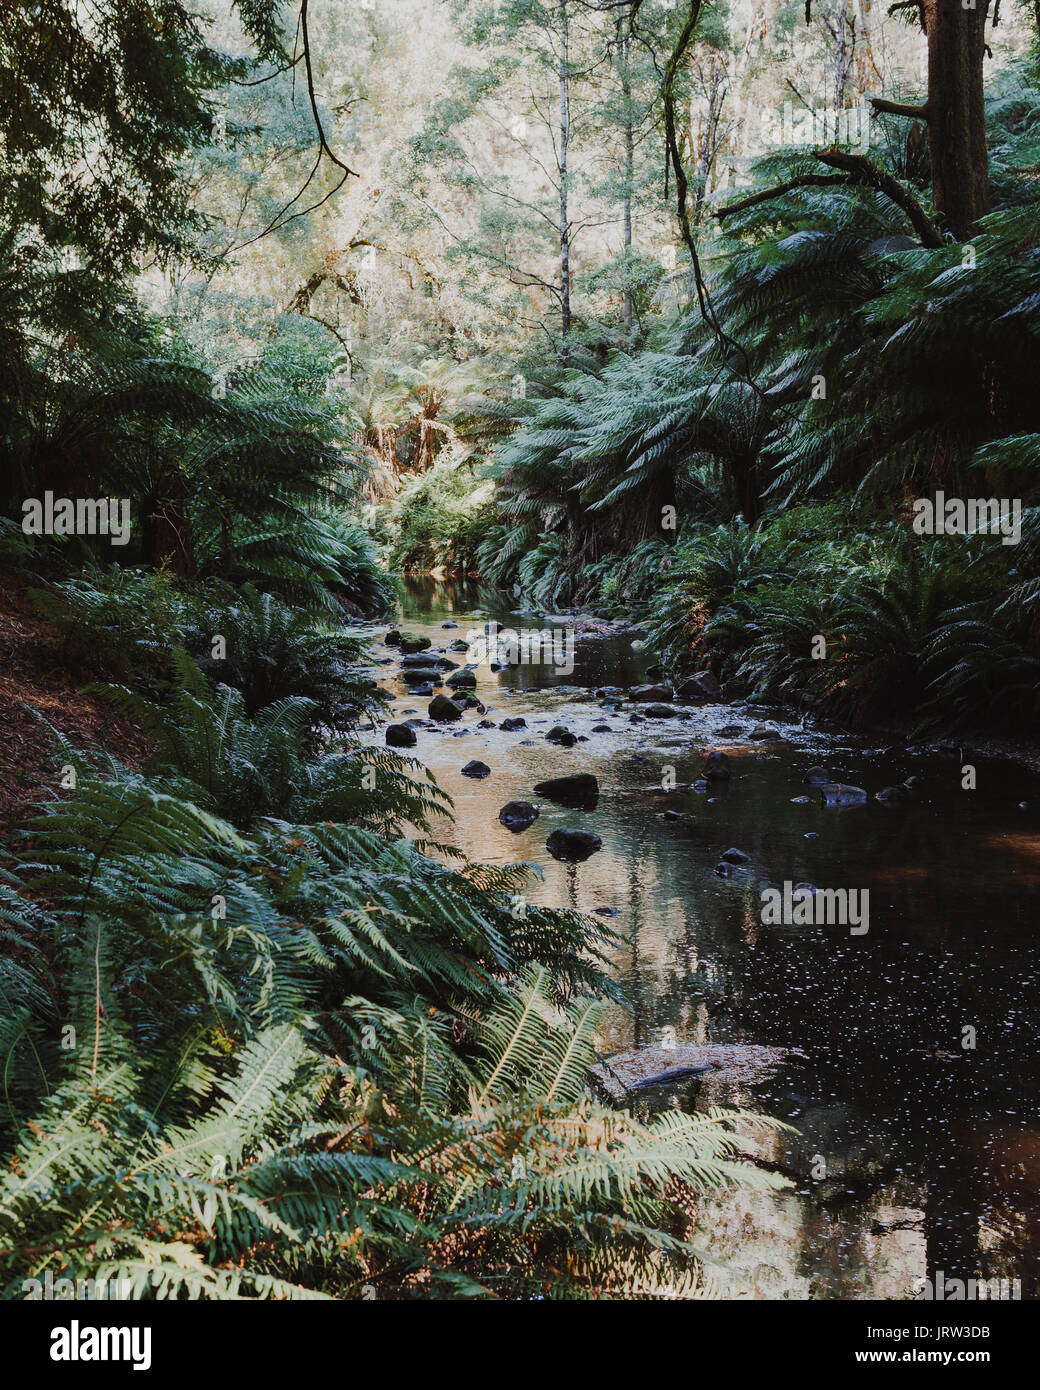 The beautiful river at Dandos Camping grounds in the Otways in the early morning with light lush ferns and trees. - Stock Image